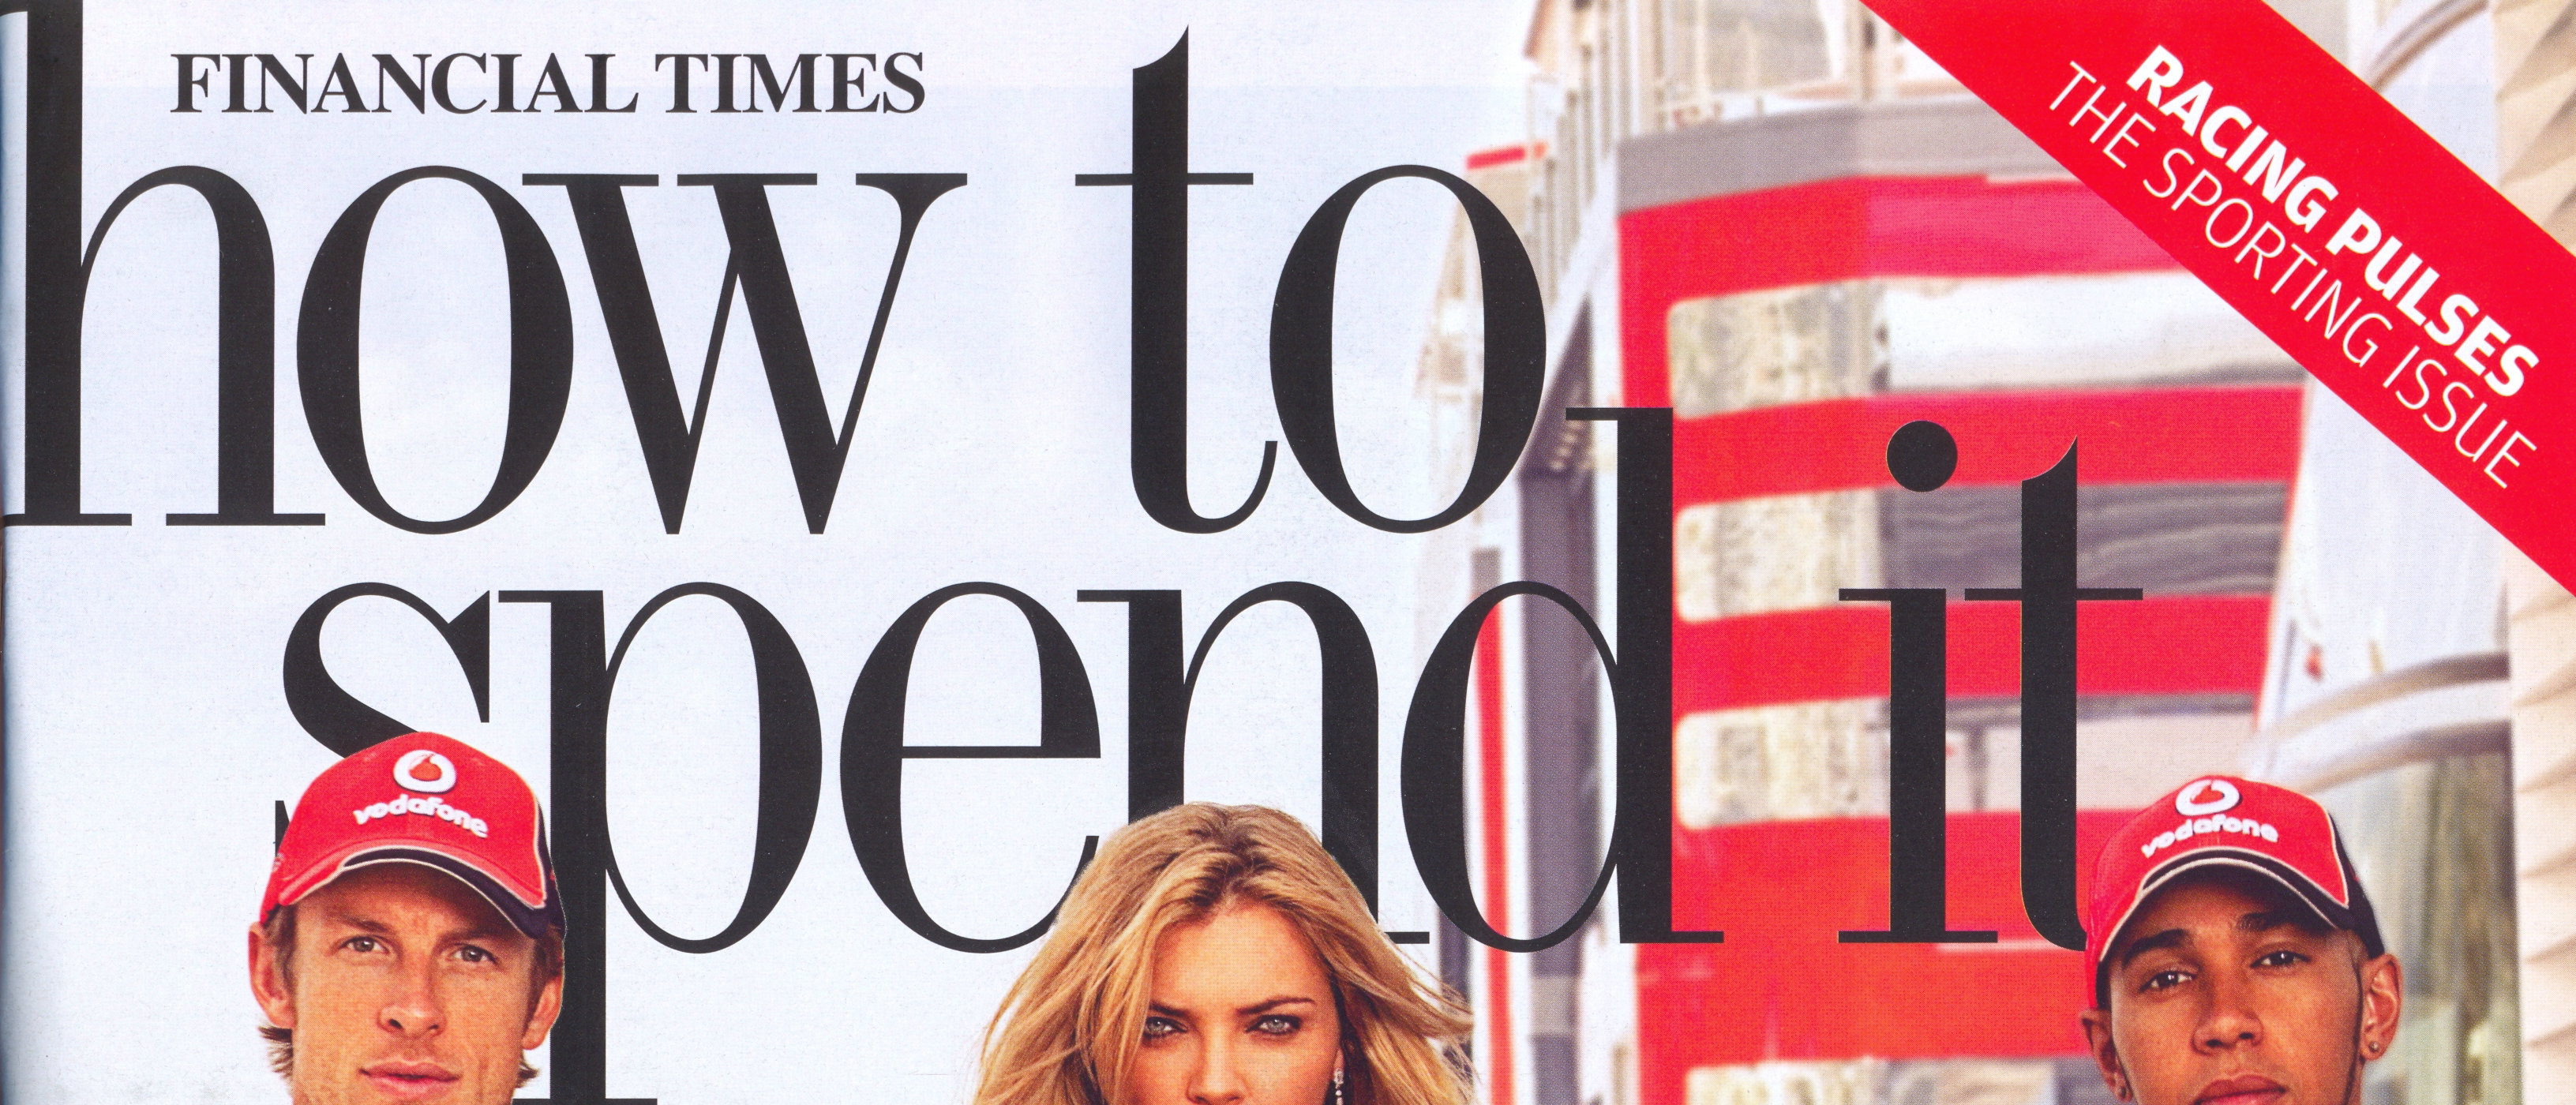 Financial Times How to Spend It - F1 Supplement, September 2011